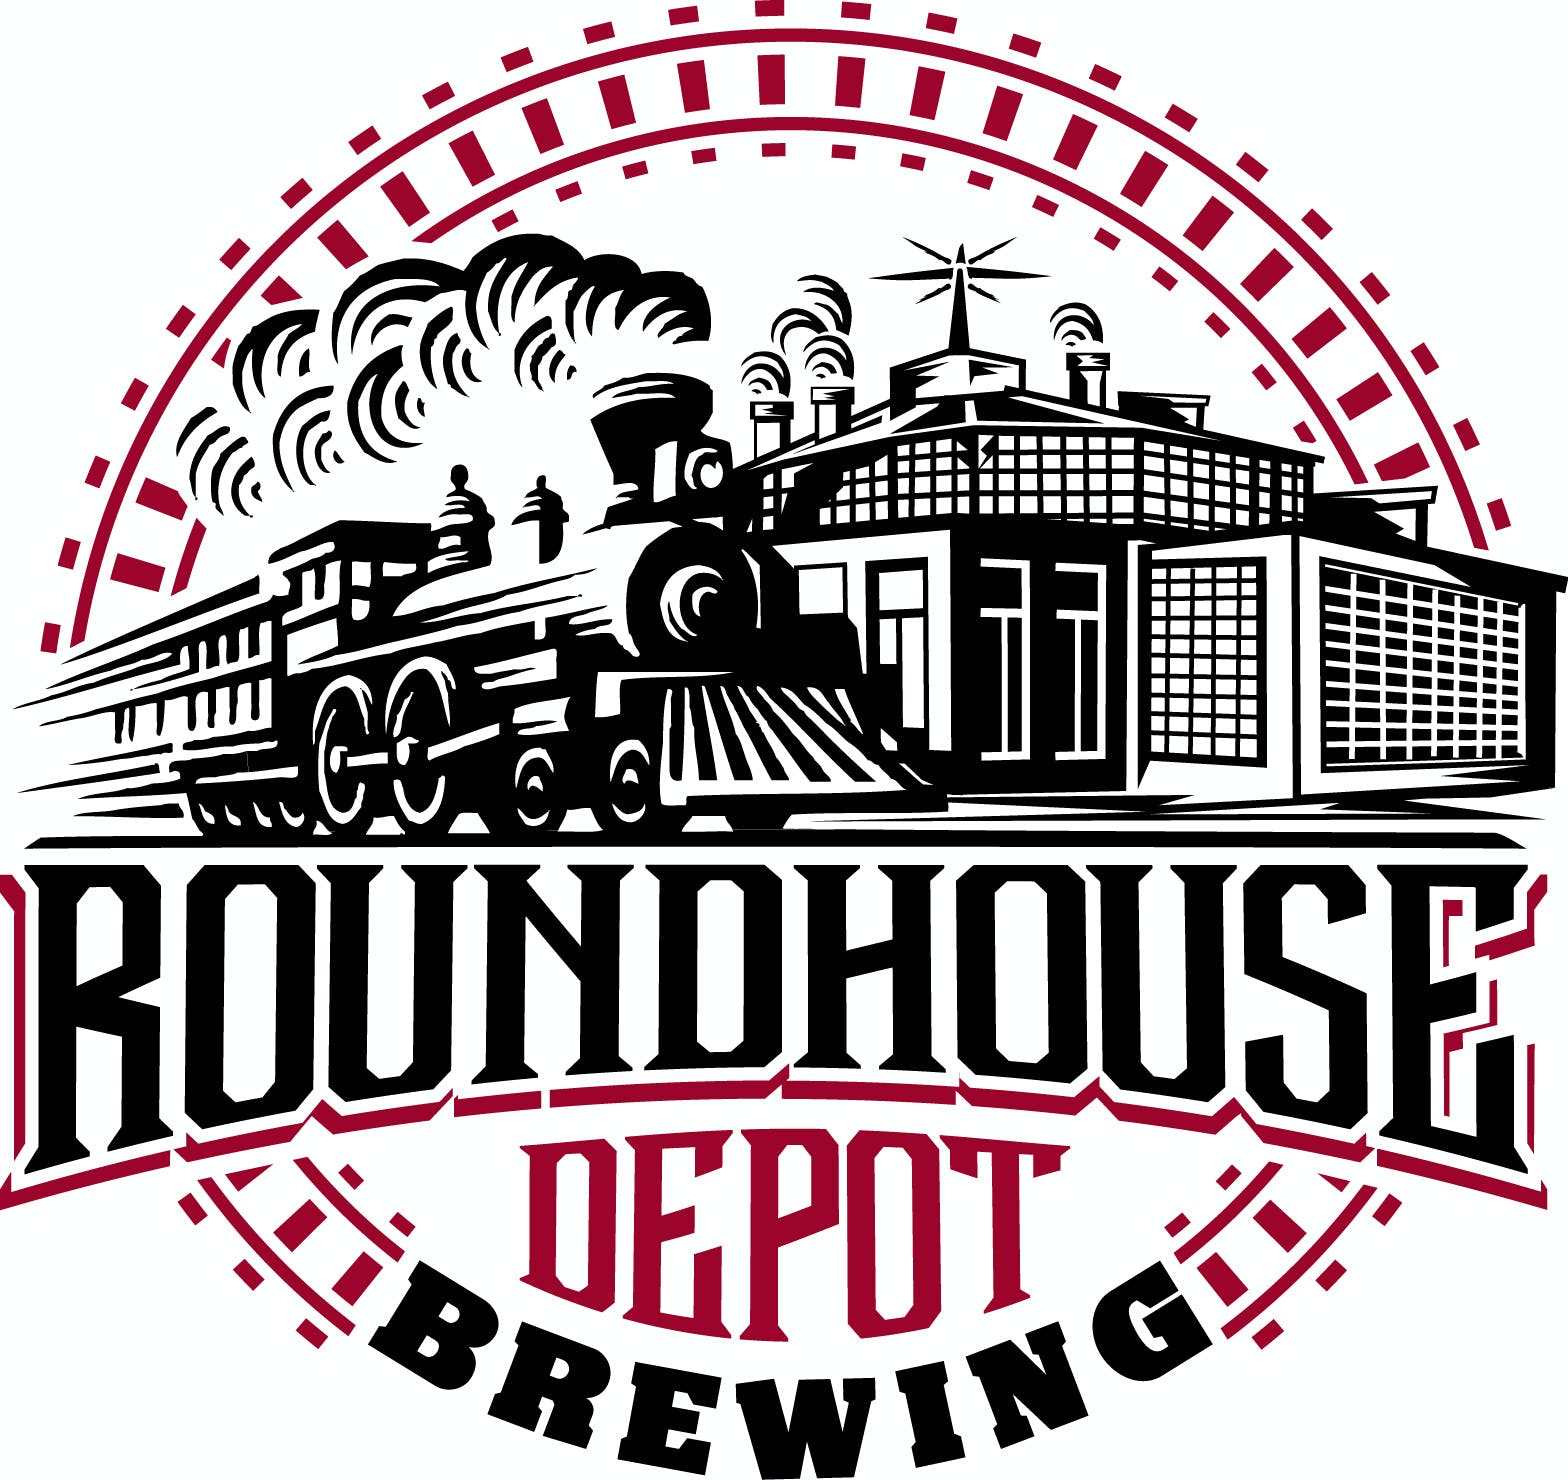 Brews — Roundhouse Depot Brewing Company